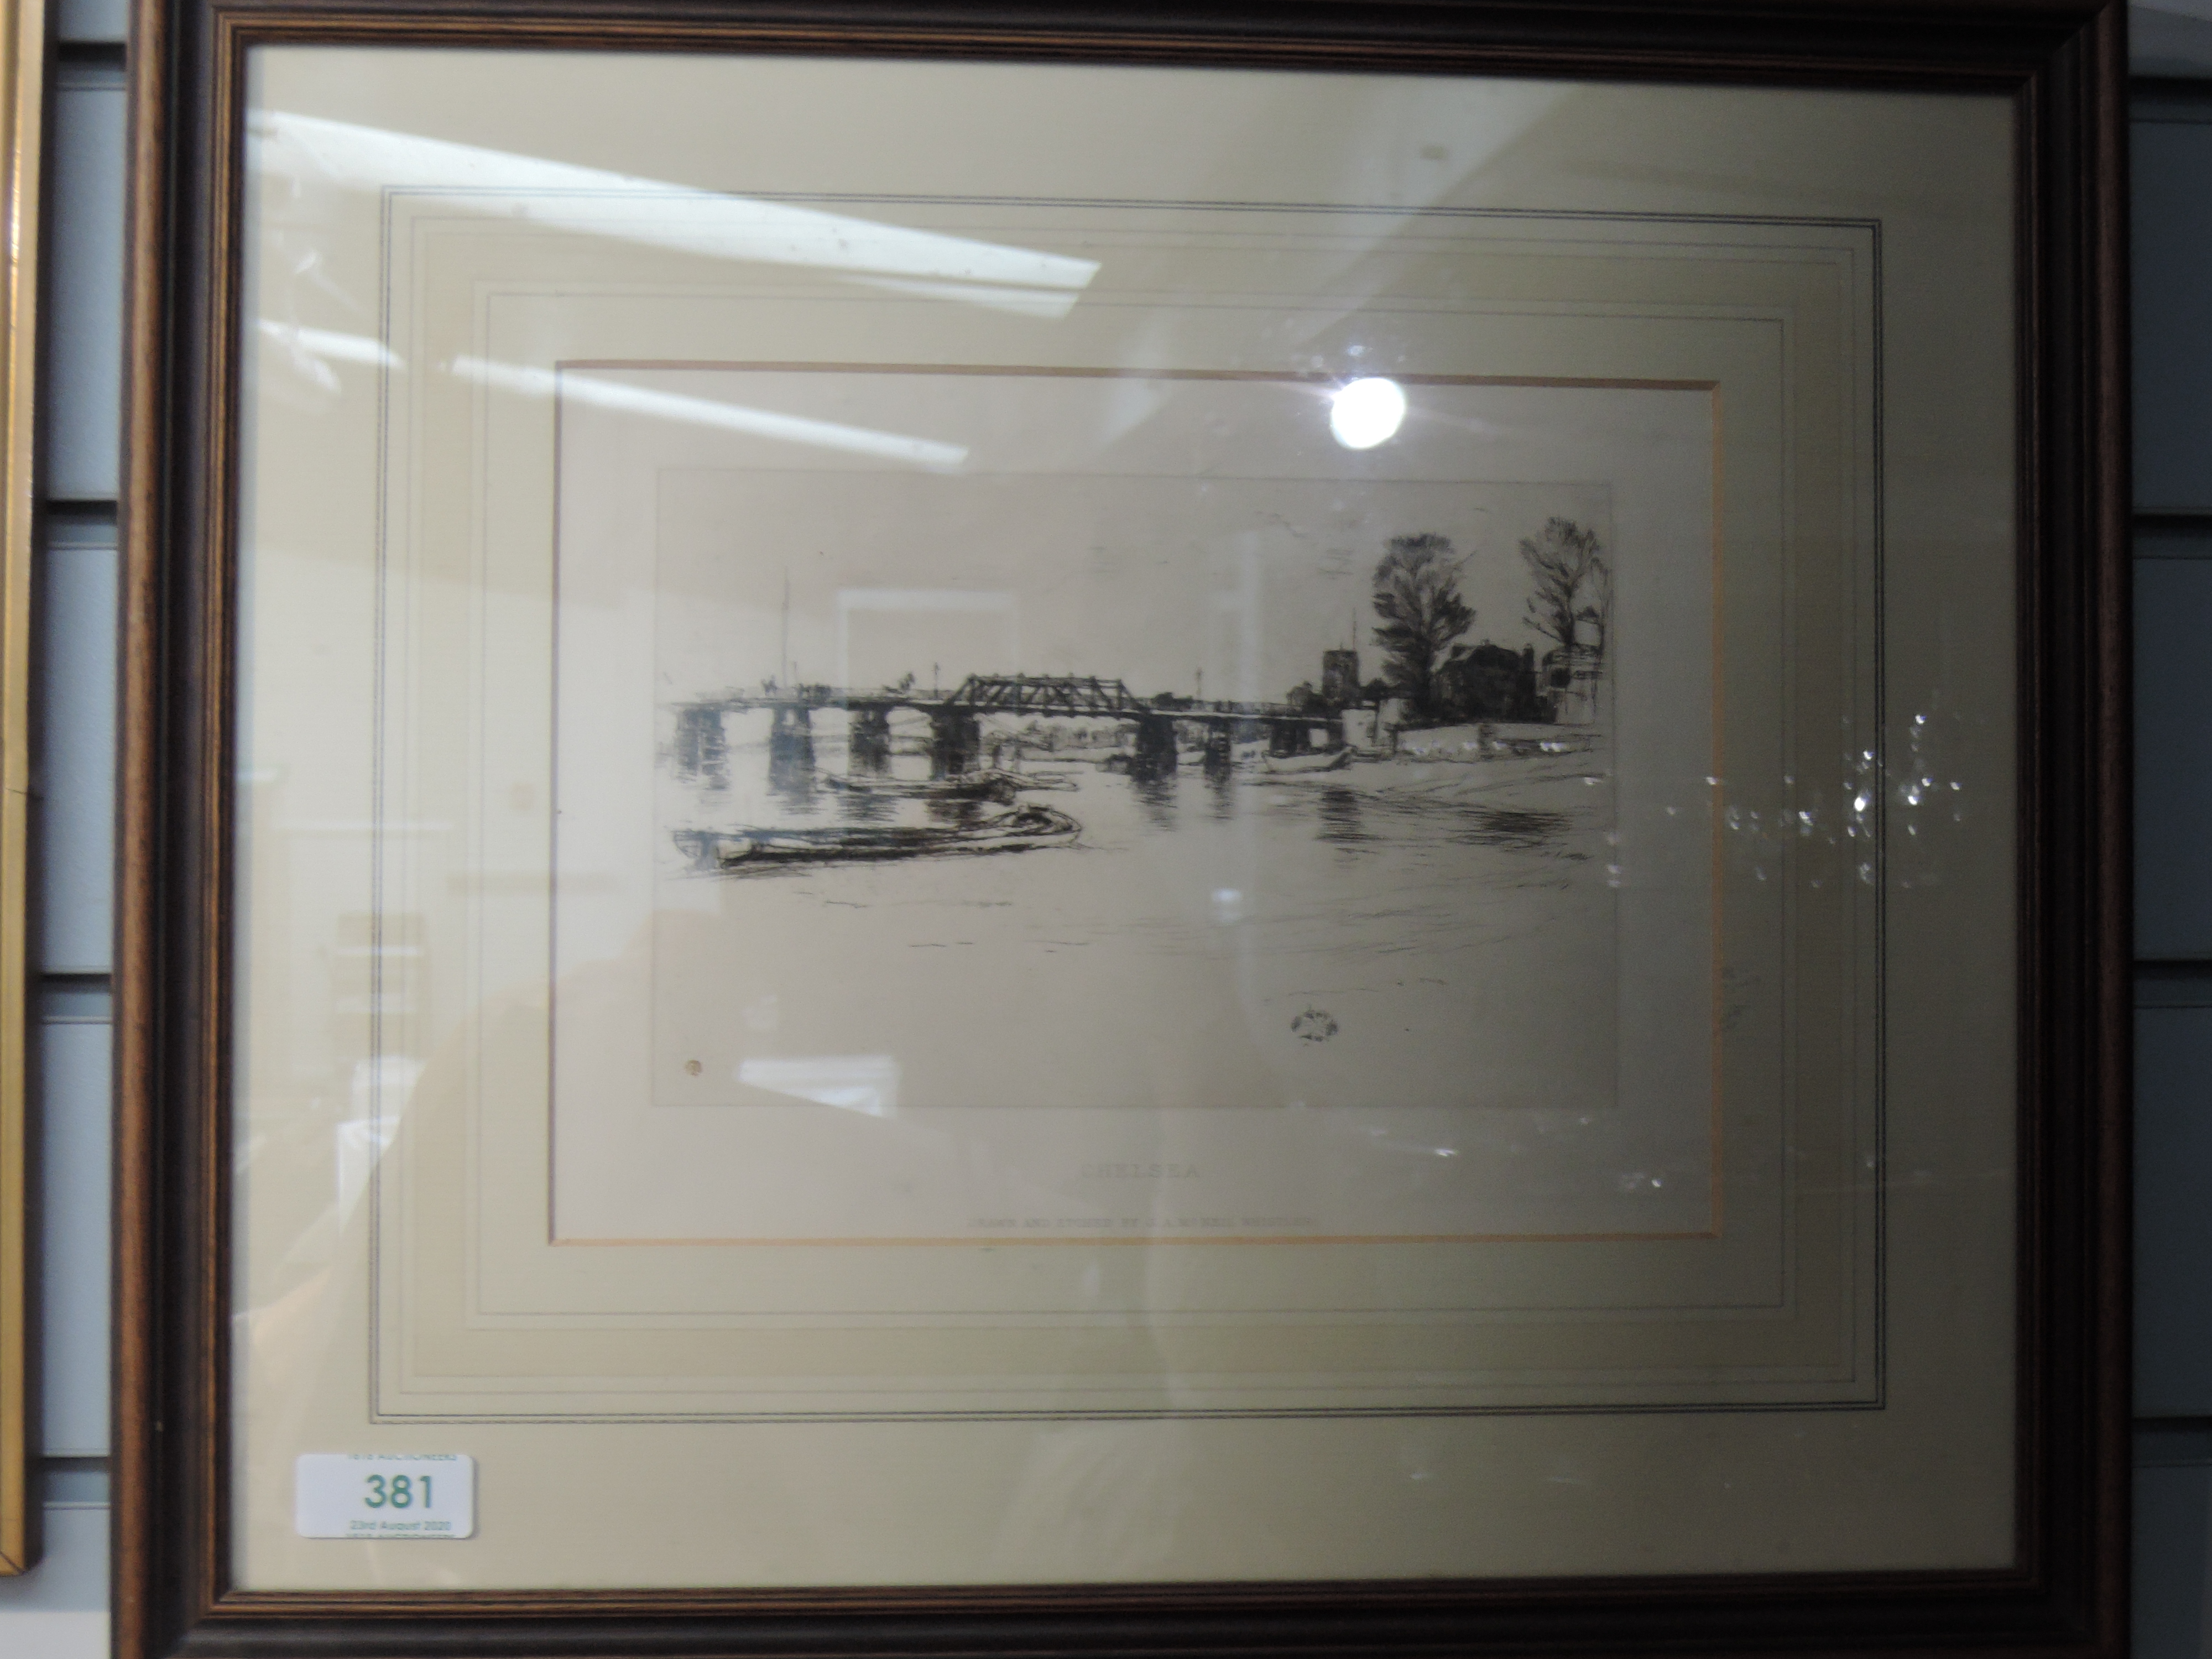 Lot 381 - An etching after J A McNeil Whistler, Chelsea, framed and glazed, 18 x 24cm